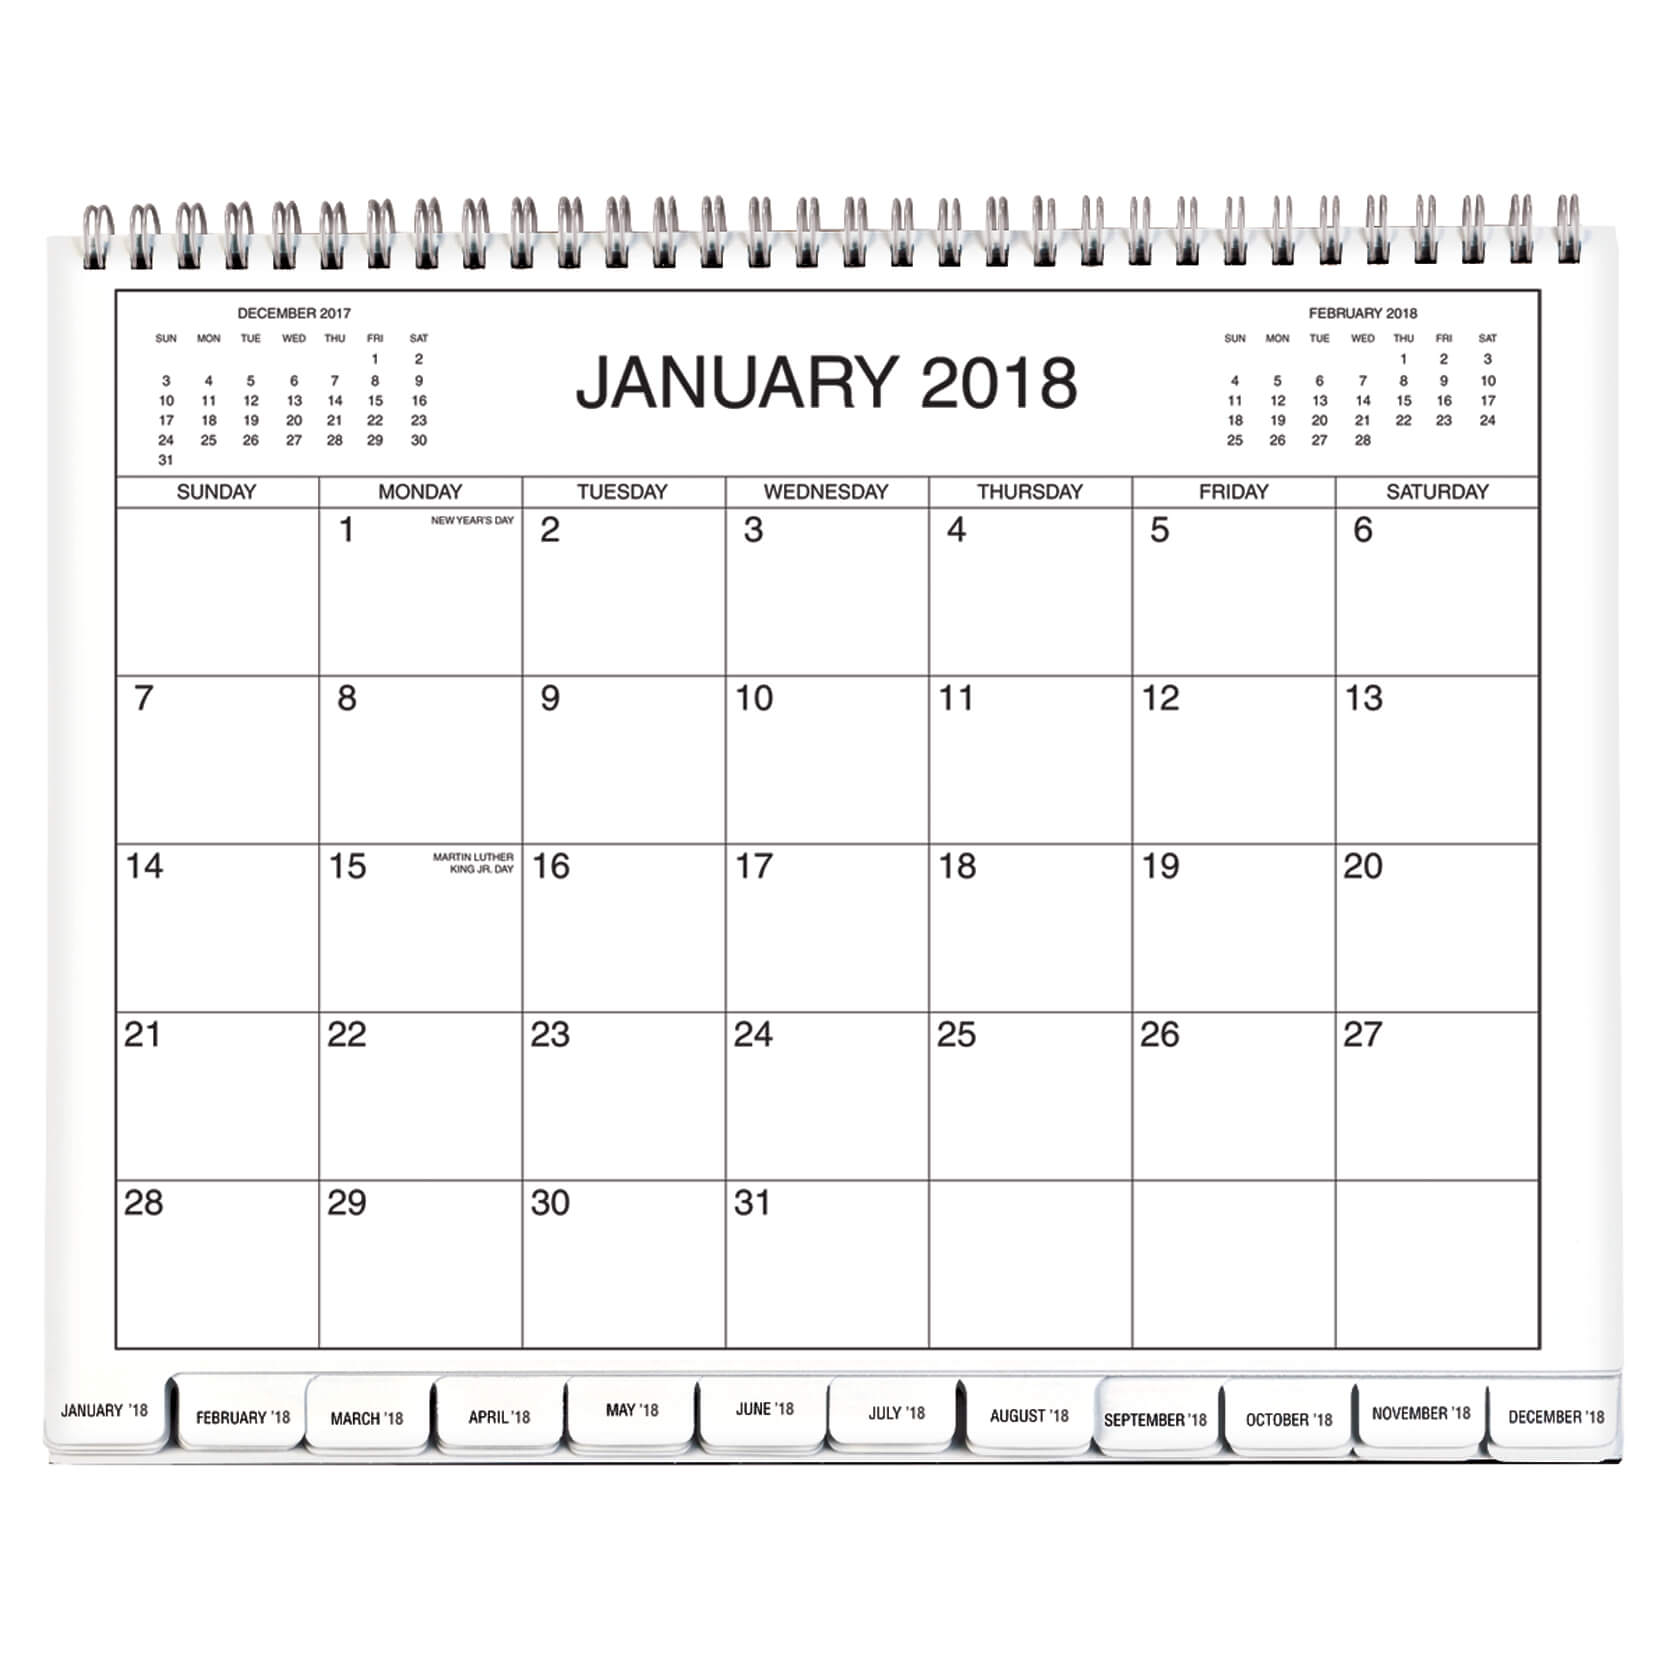 5 Year Calendar 2018-2019-2020-2021-2022 - Monthly Calendar - Walter intended for 2020 Printable Calendar With Large Squares